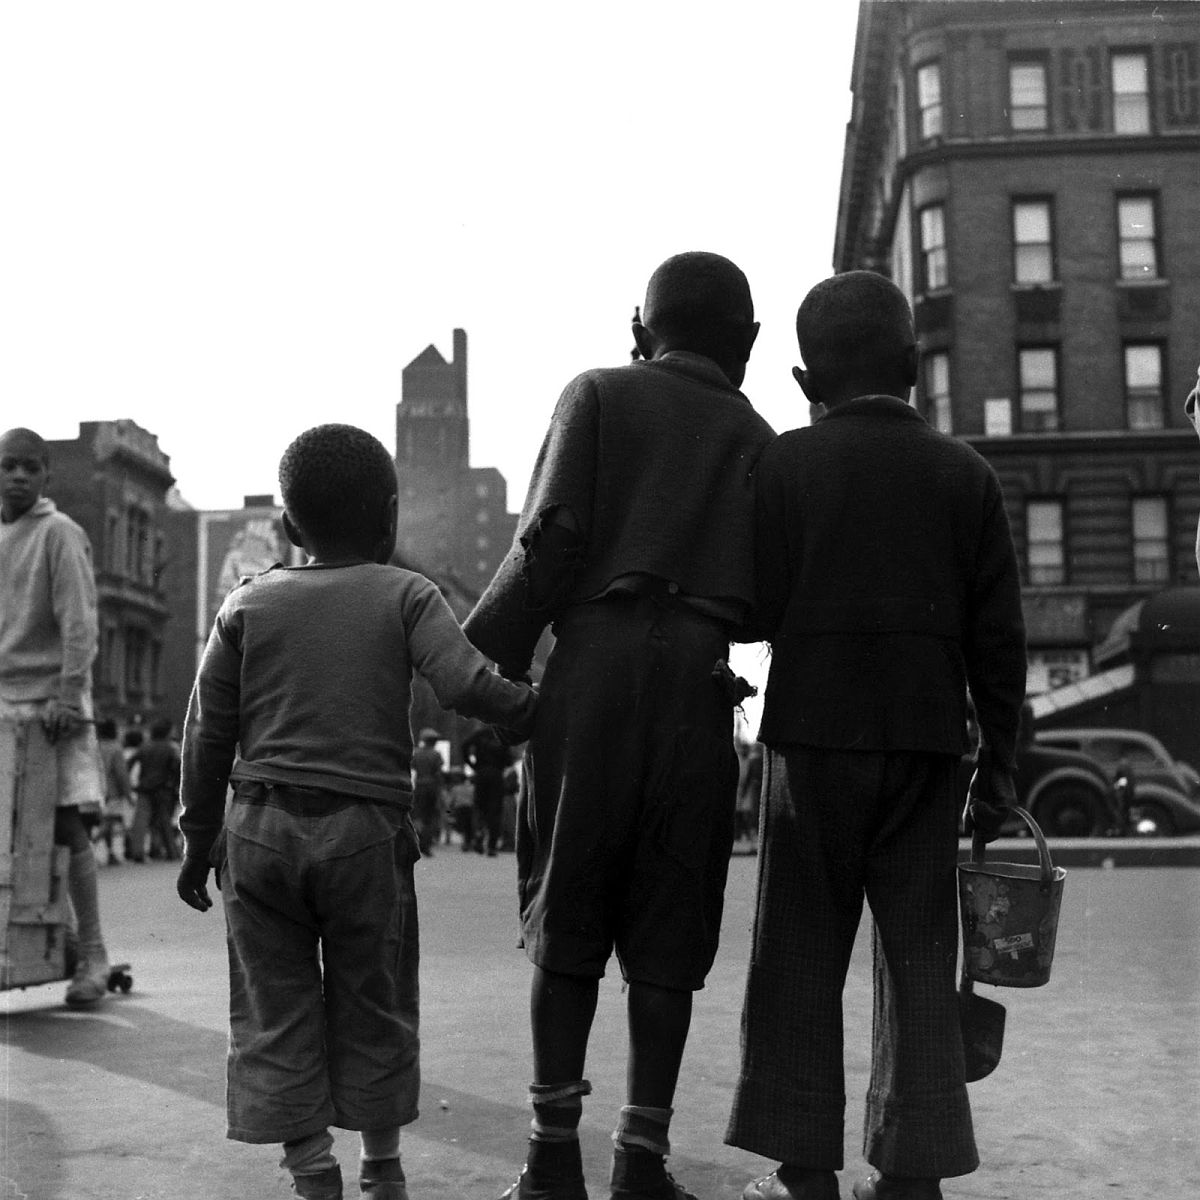 Three young boys hold hands, Harlem, 1938.